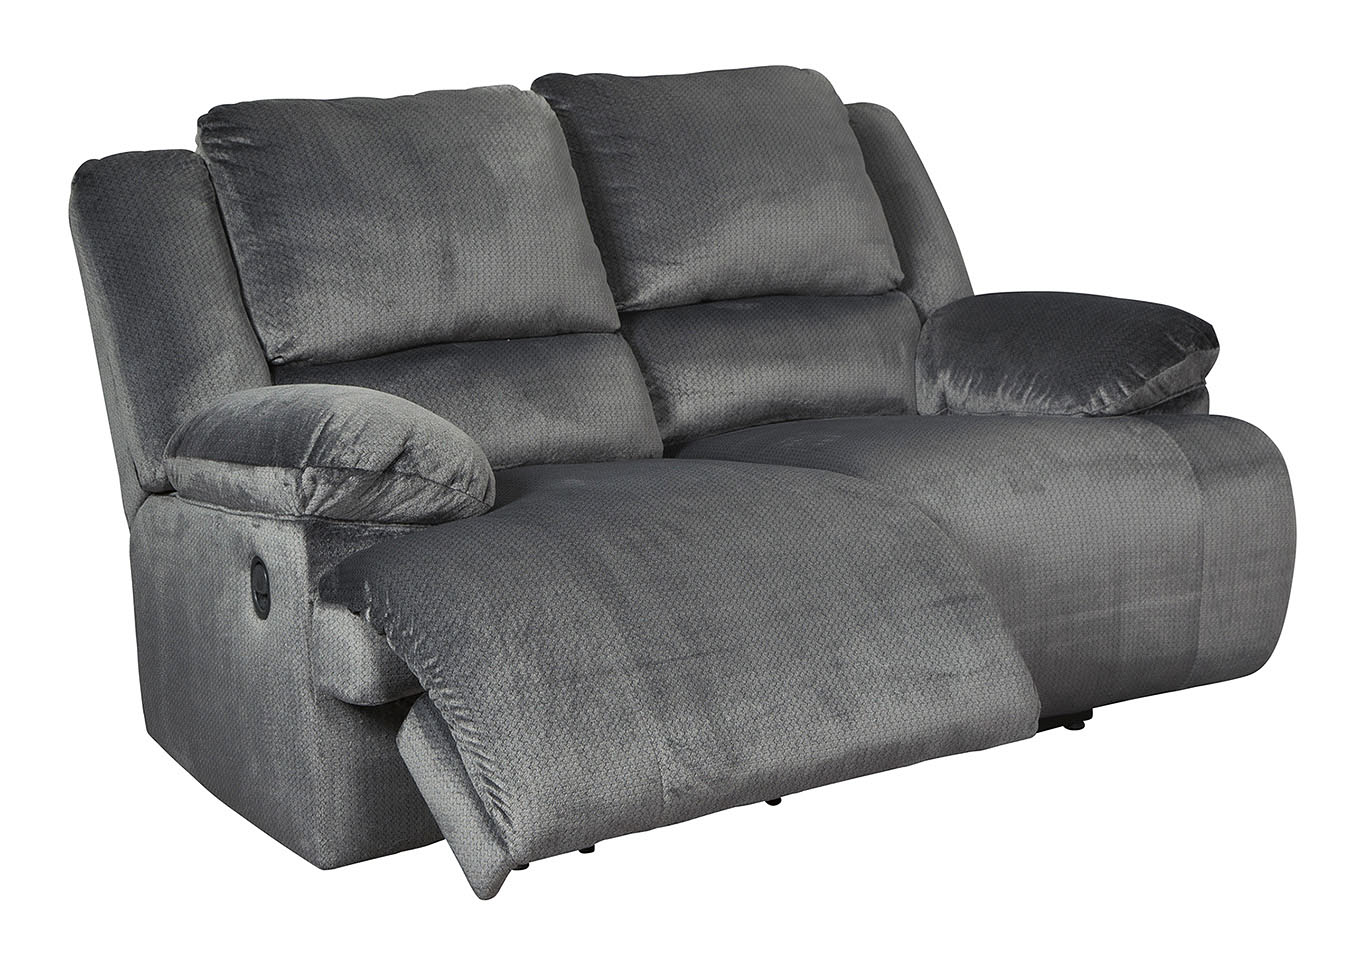 Clonmel Reclining Loveseat,Signature Design By Ashley